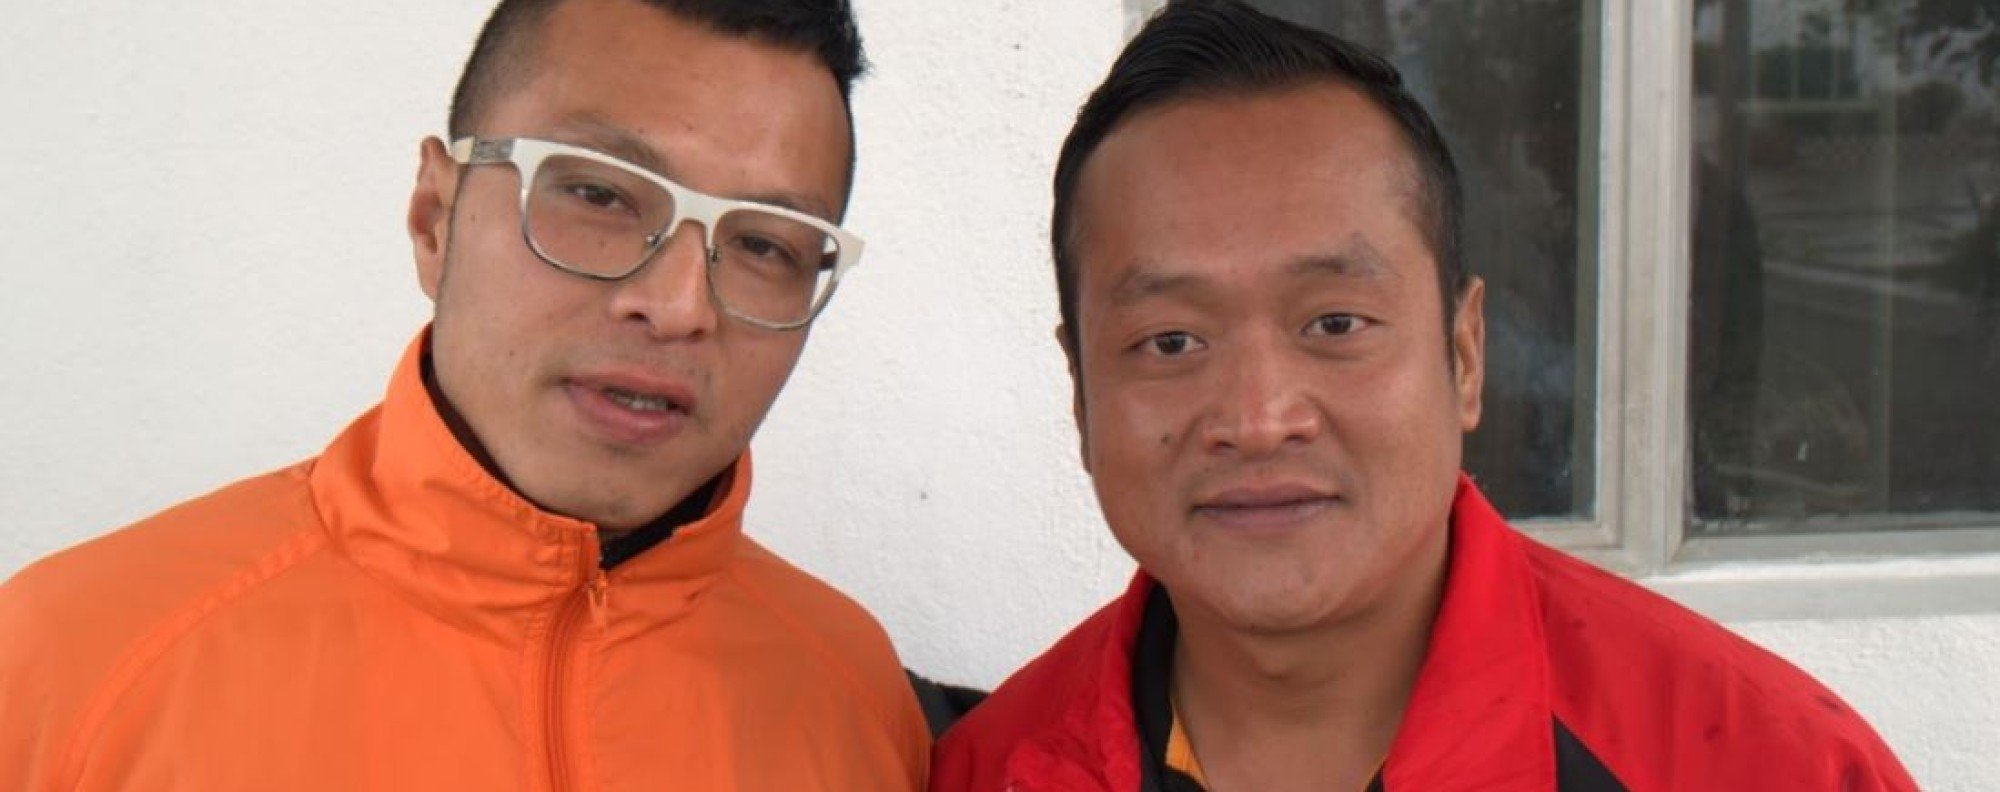 Allen Yuen (L) and Thapa Magar Ramu are running in the Gurkha Trailblazer this month. A feat they would have thought impossible when they were addicted to drugs. Photo: Mark Agnew